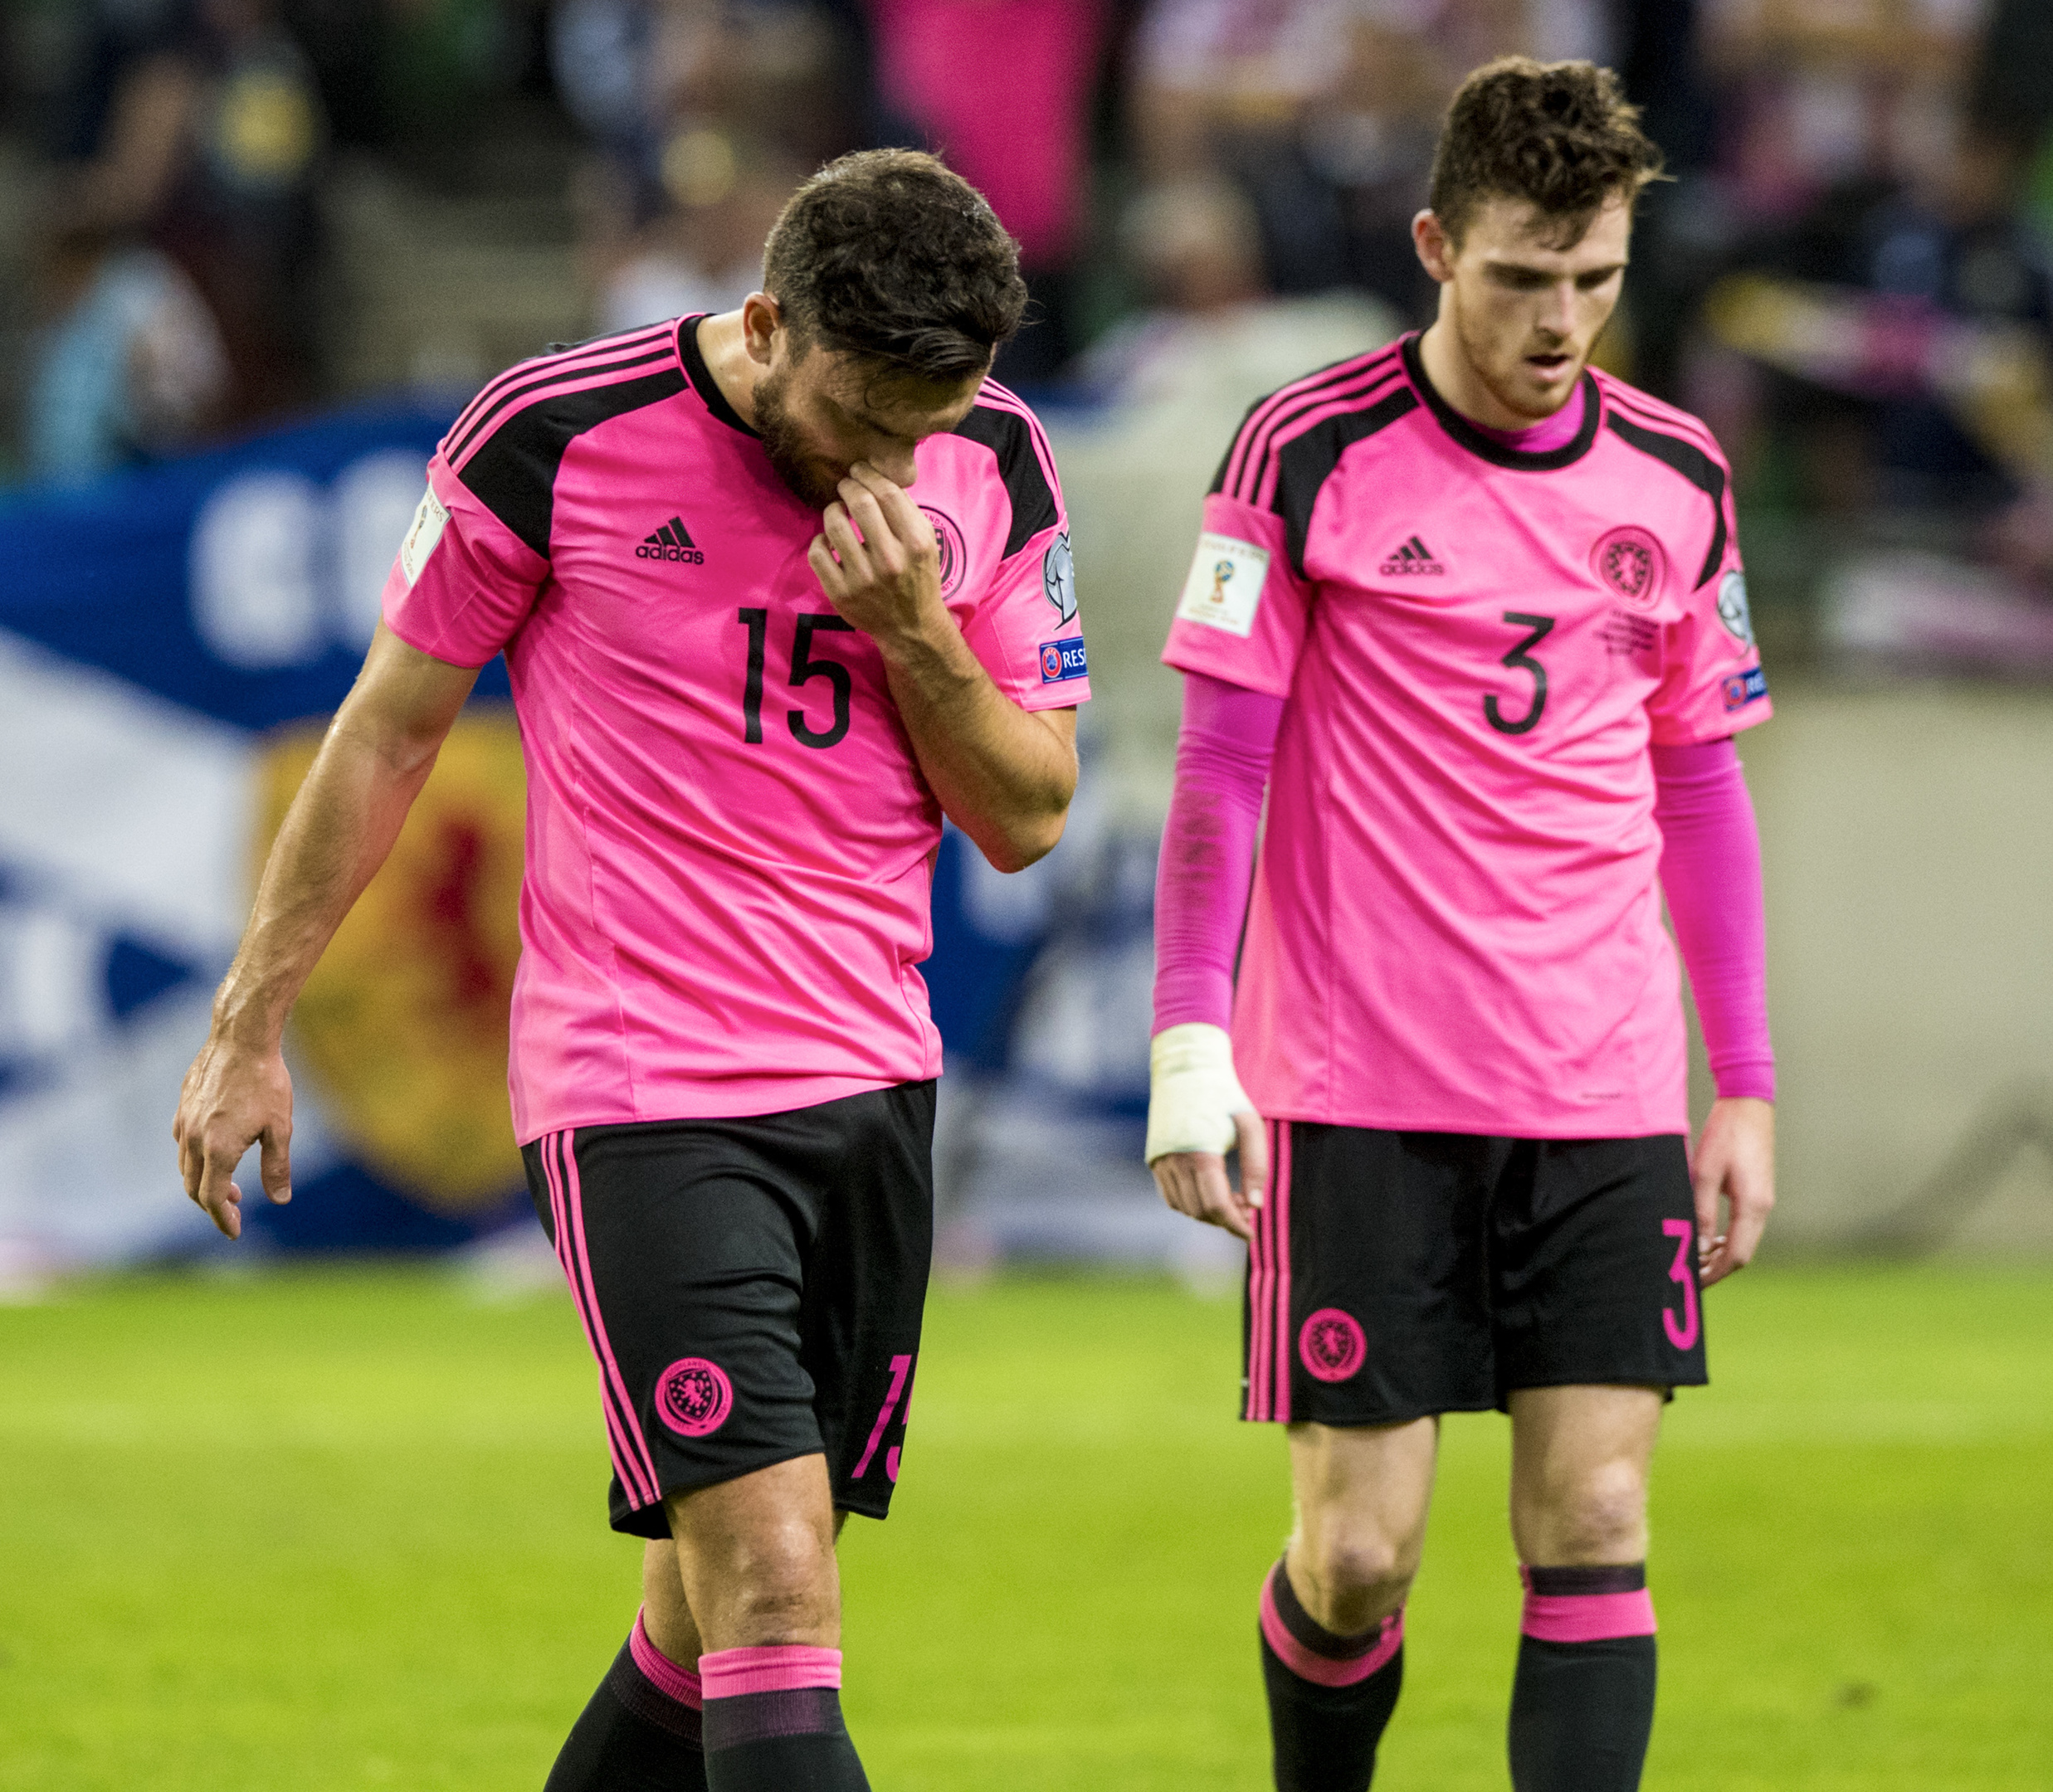 Dejection for Scotland's Robert Snodgrass at full-time